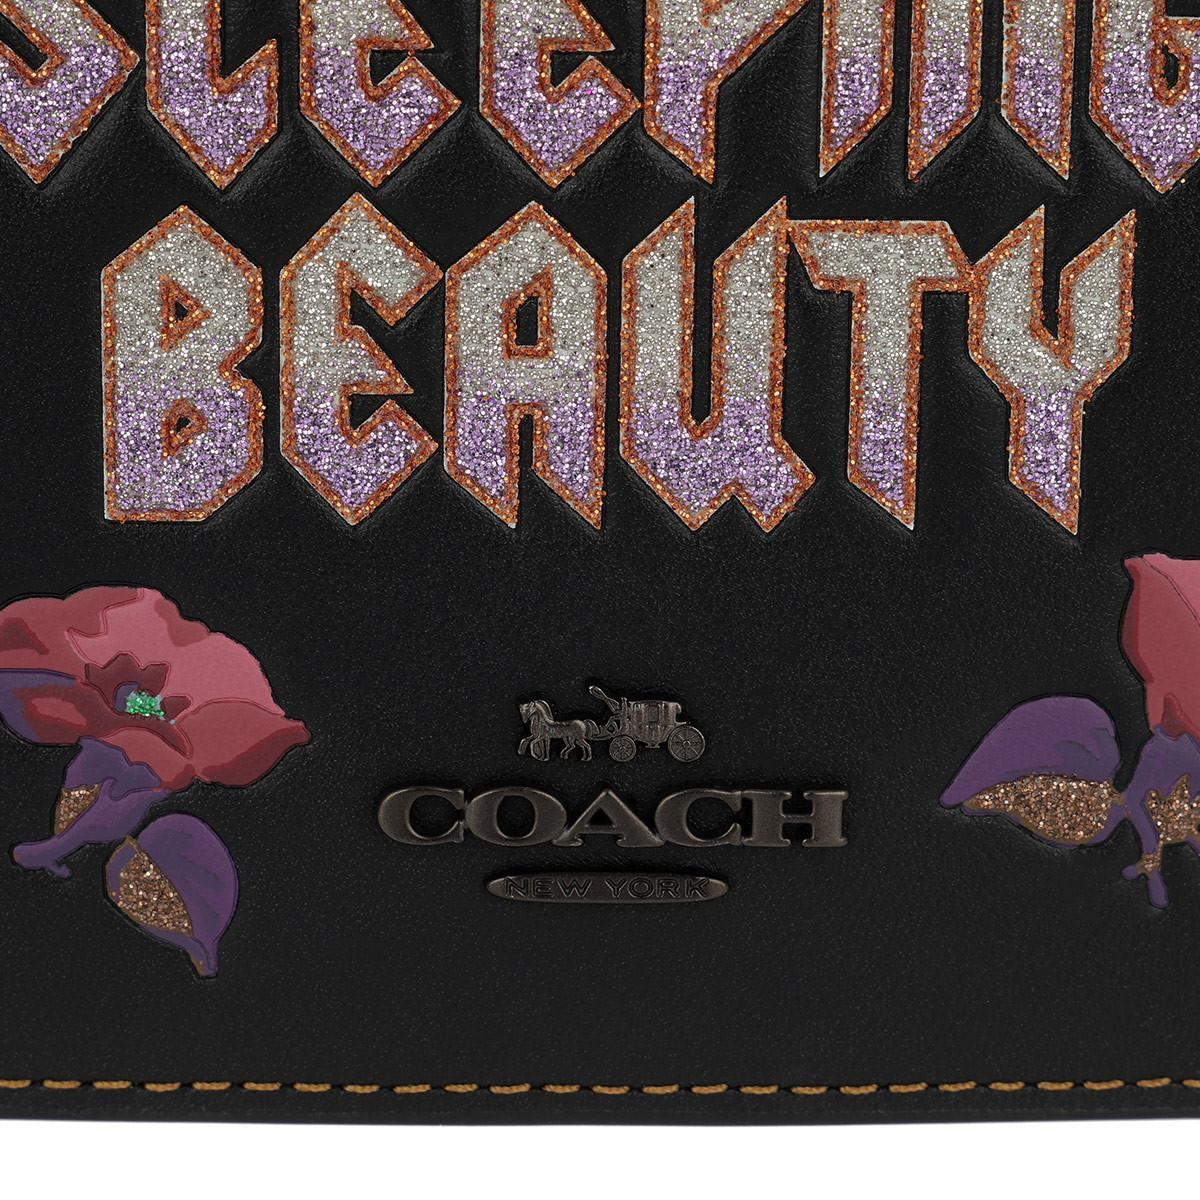 COACH Leather Sleeping Beauty Foldover Crossbody Clutch Black/magenta